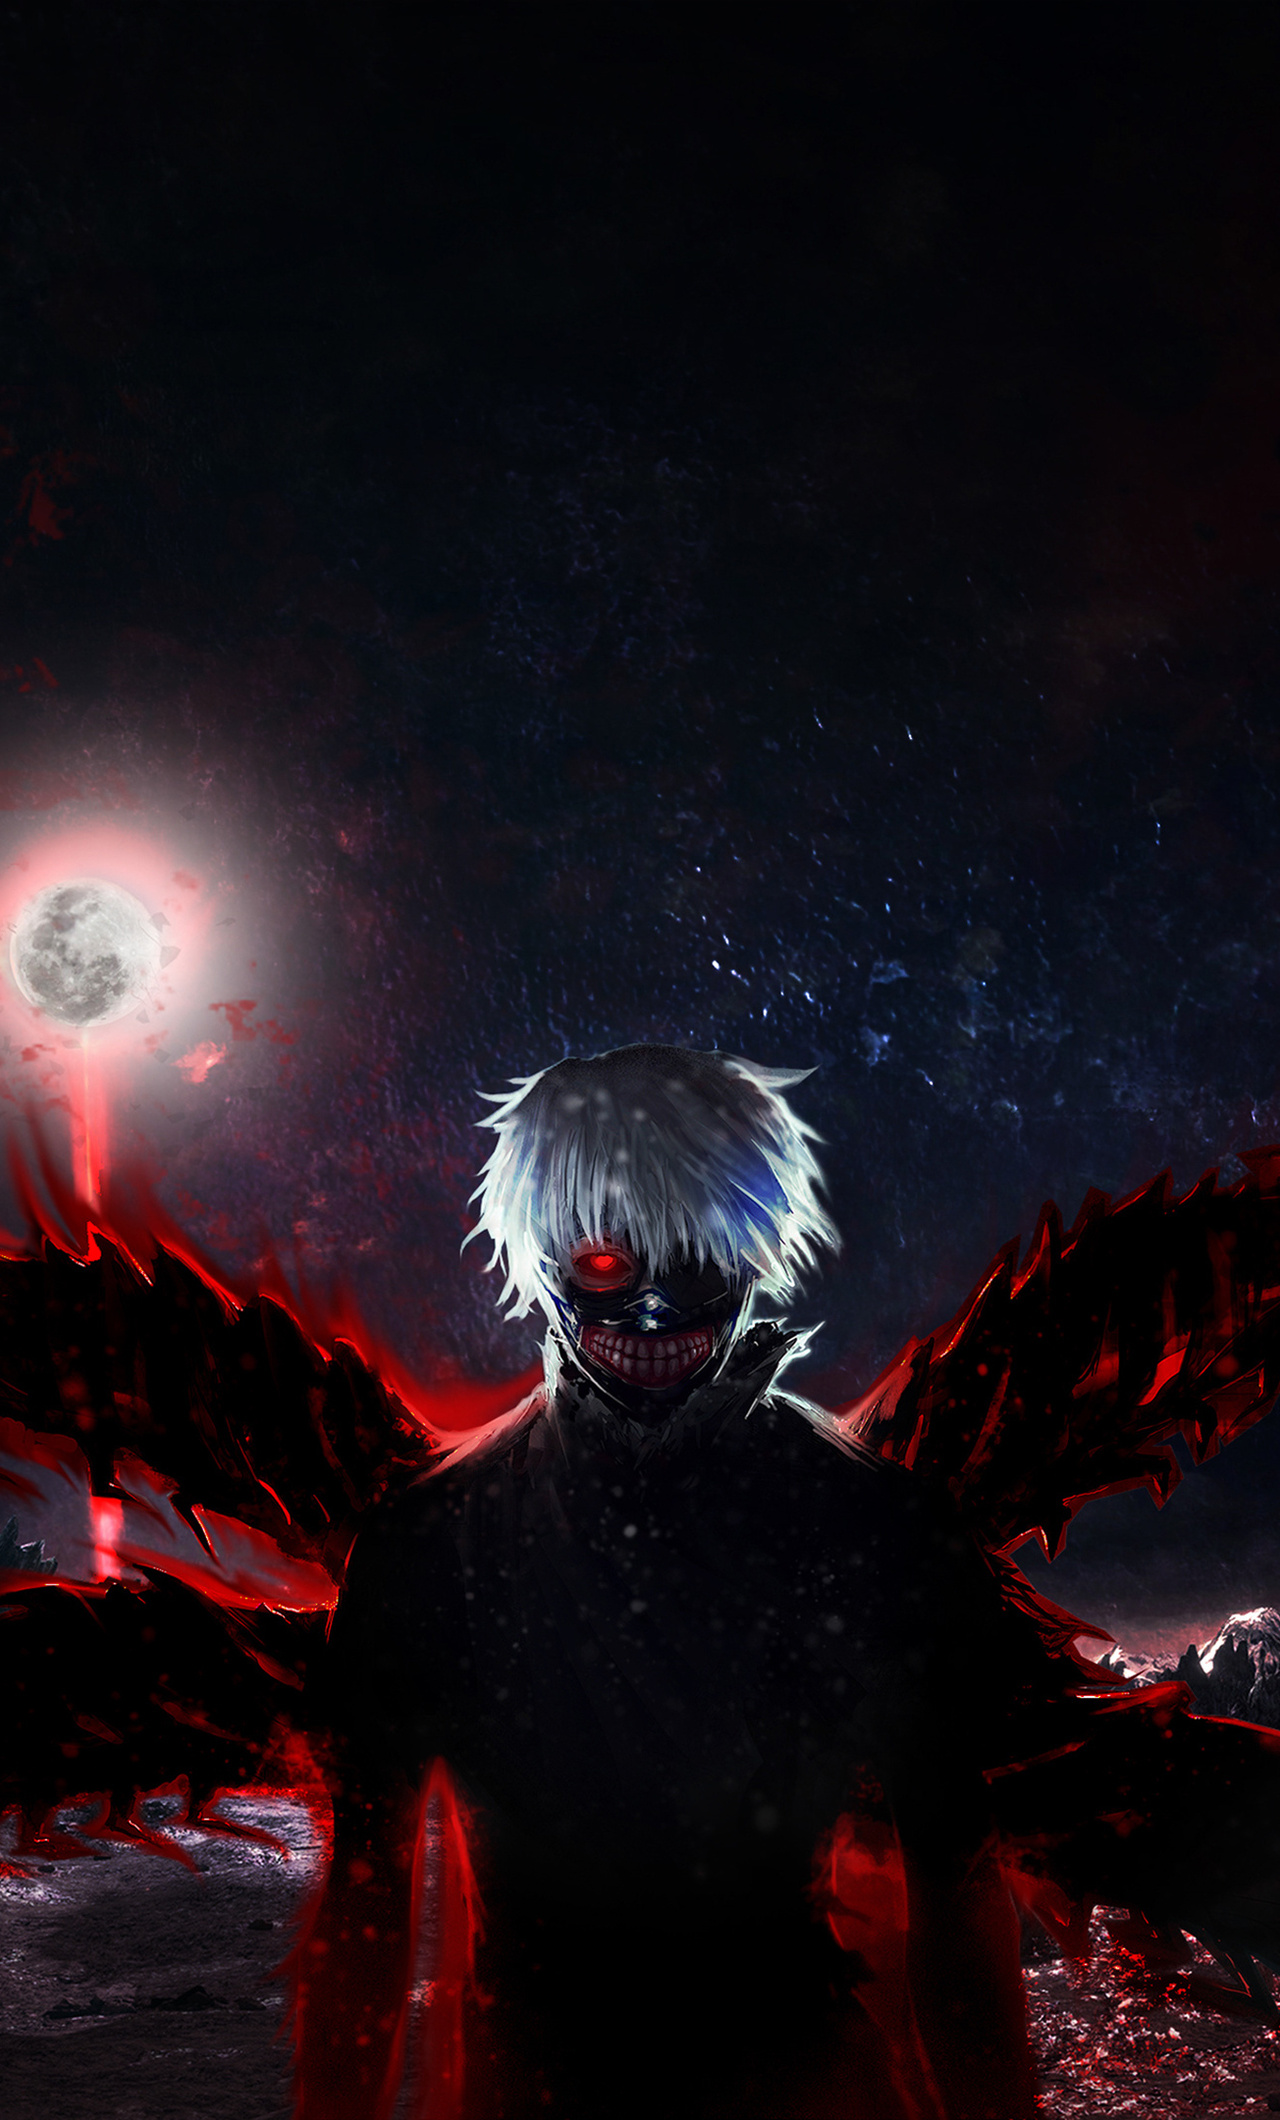 Tons of awesome tokyo ghoul 4k wallpapers to download for free. 1280x2120 Tokyo Ghoul 4k iPhone 6+ HD 4k Wallpapers ...